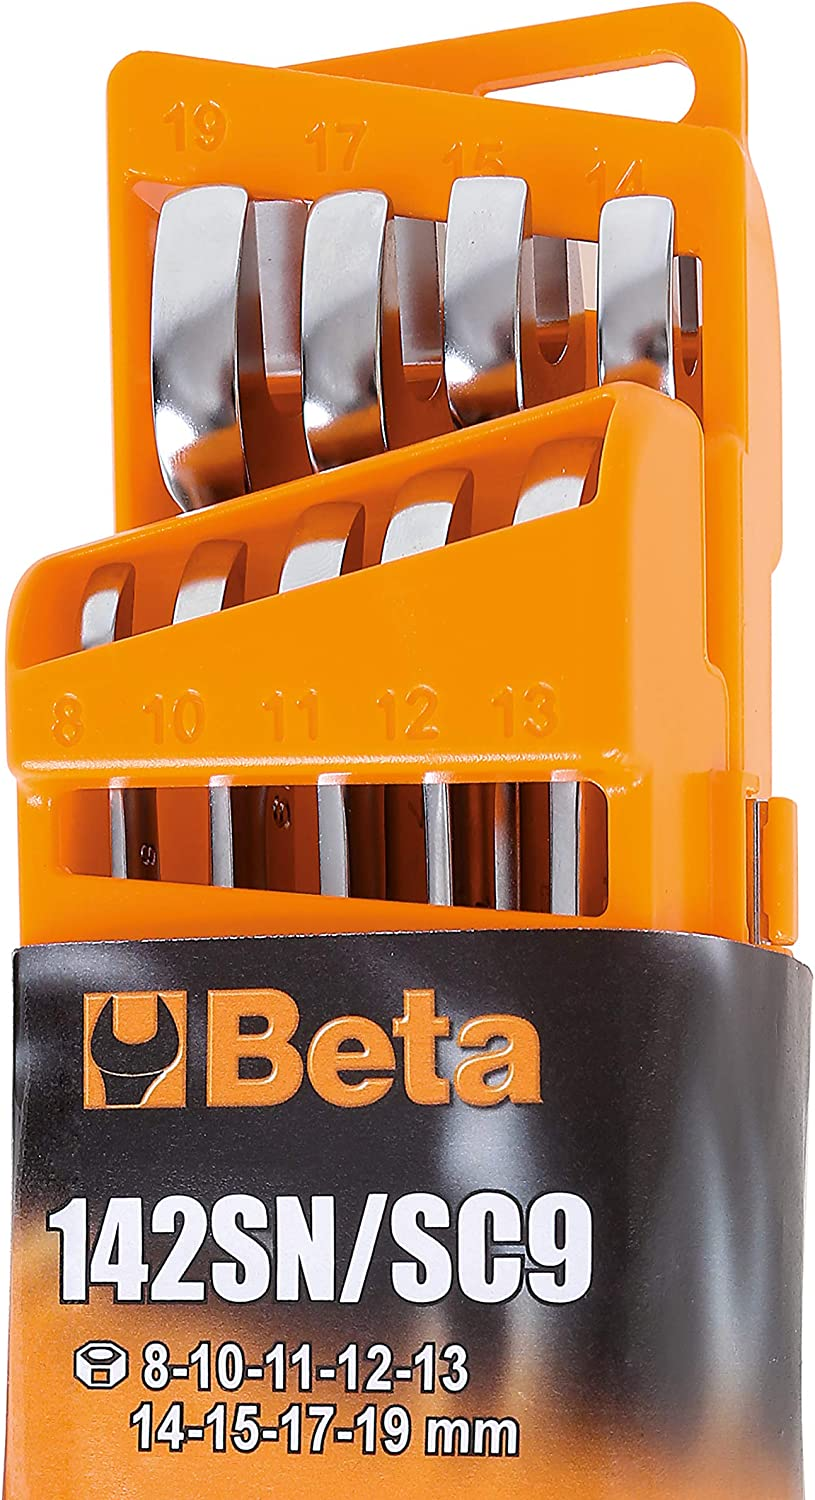 Beta 142SN//SC9 9 Piece Ratchet Combination Spanner Set with Compact Holder